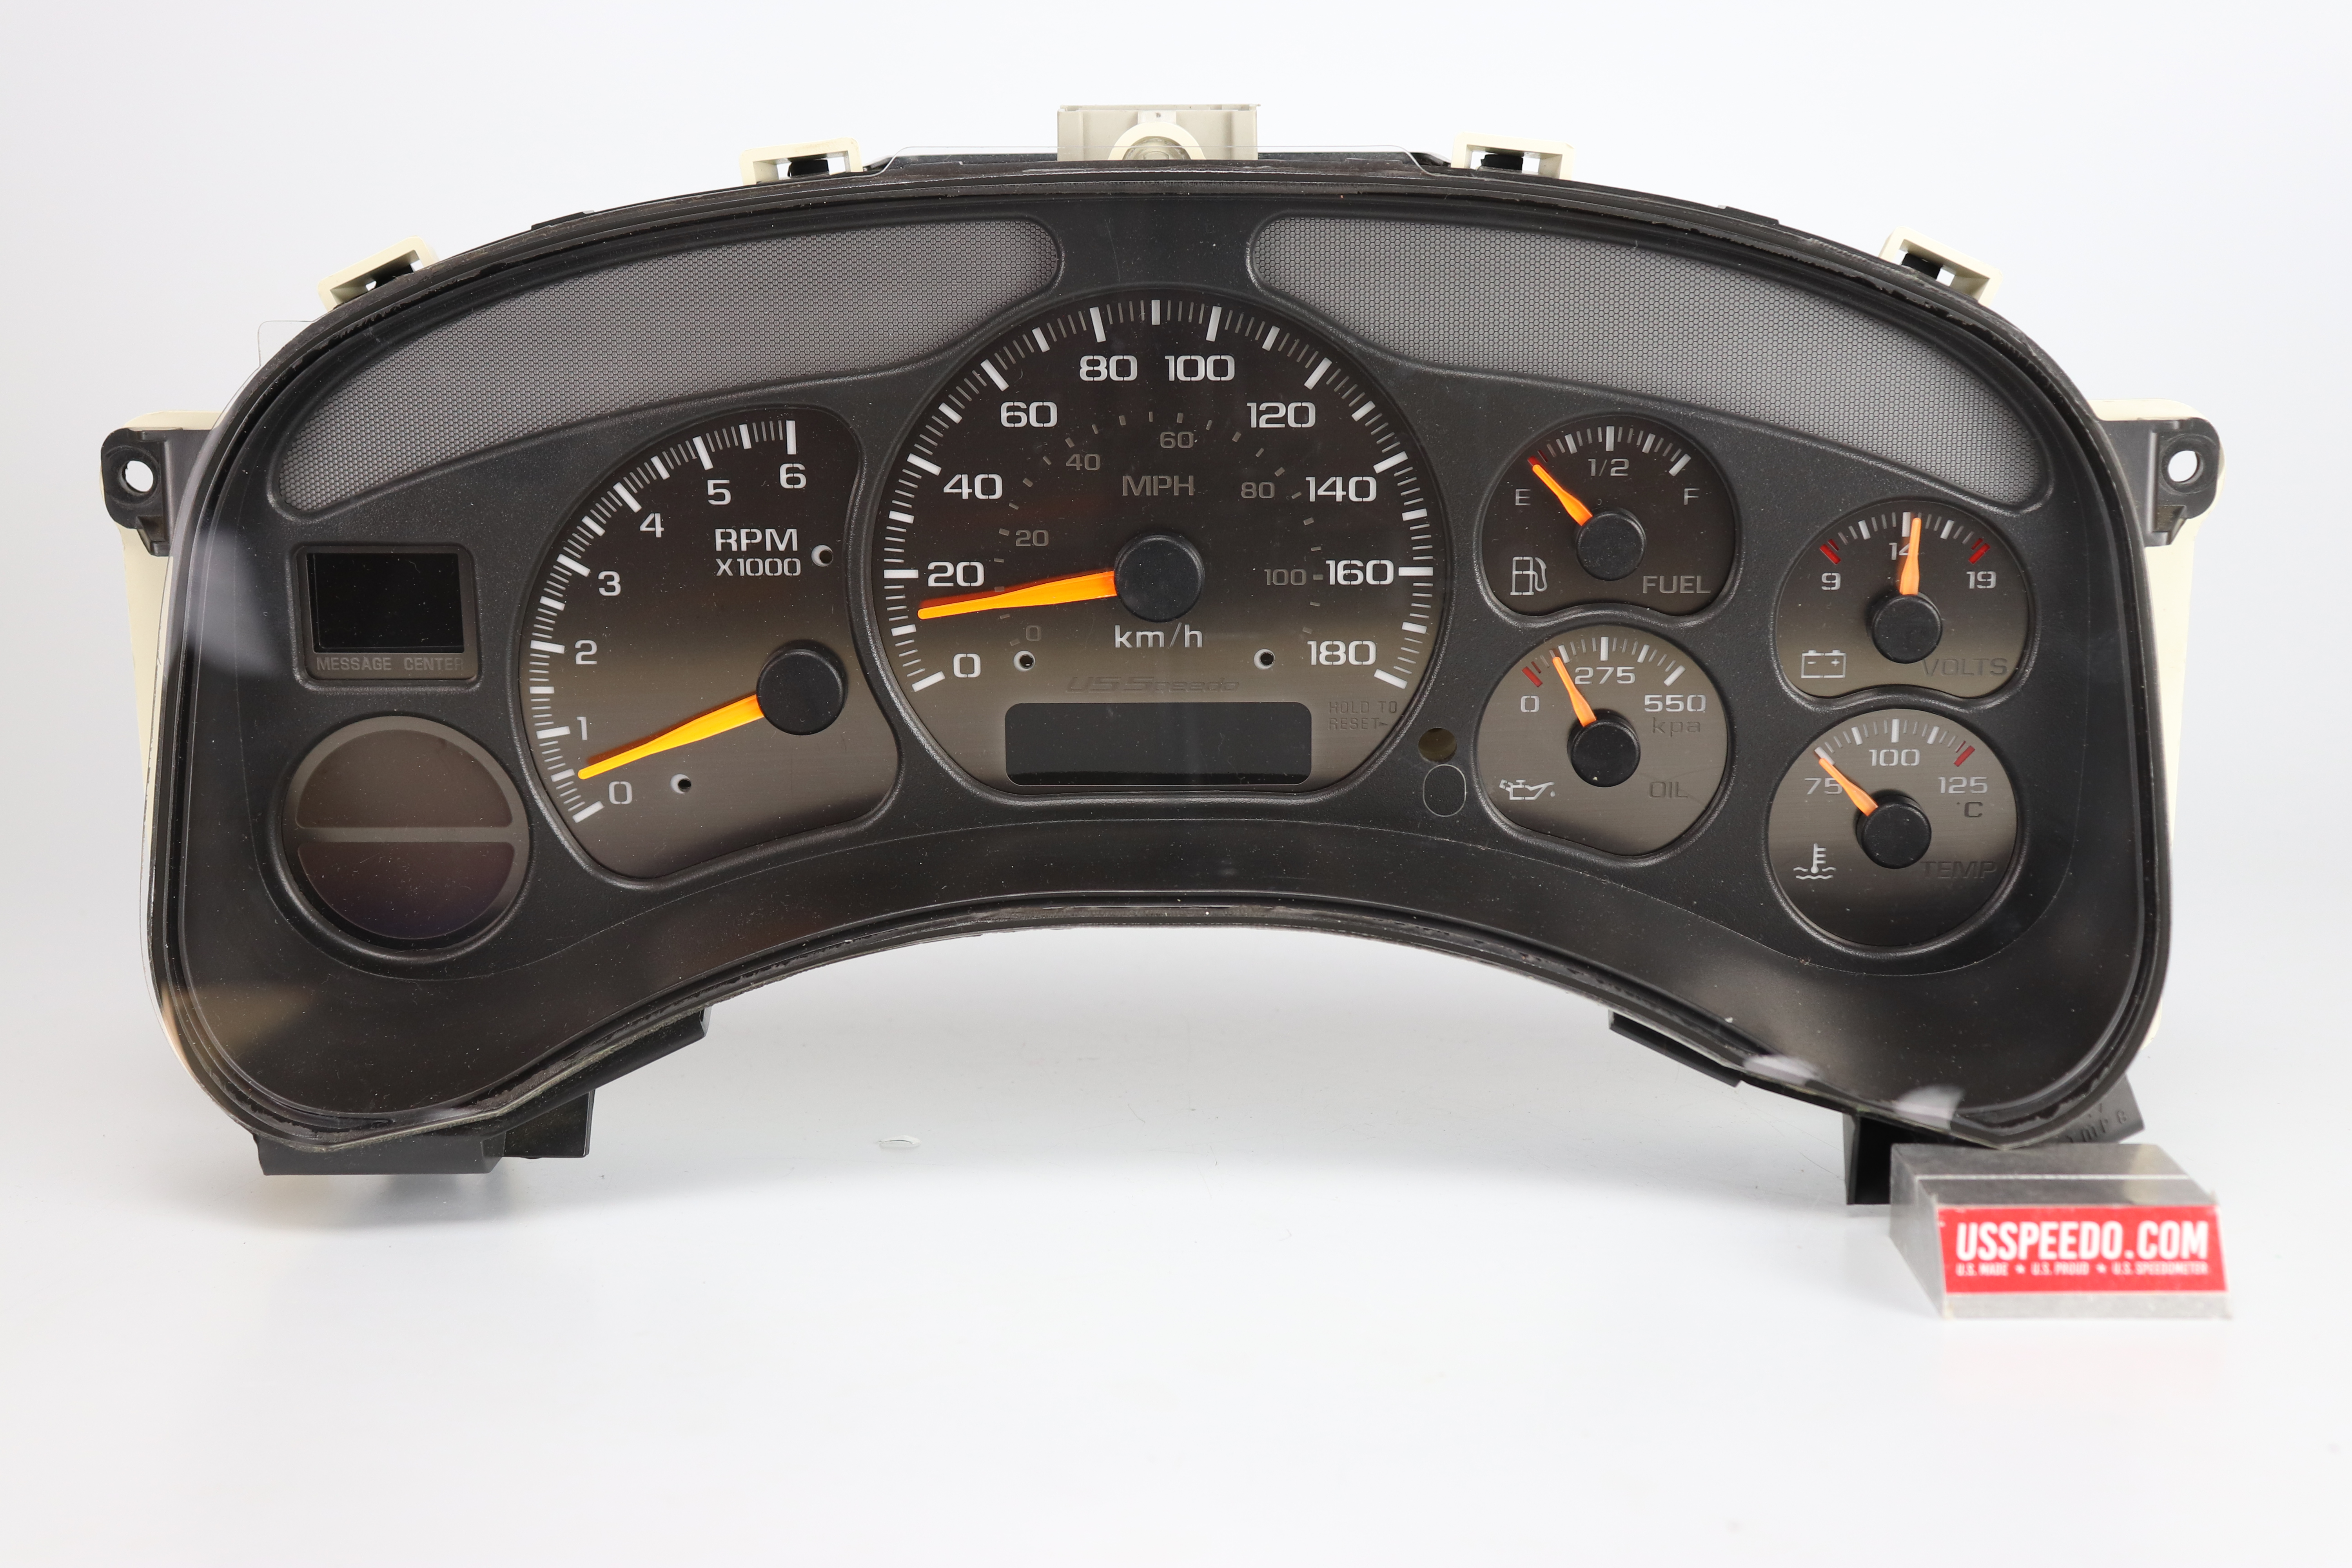 US Speedo Stealth Edition for 1999 Chevrolet / GMC Truck & SUV